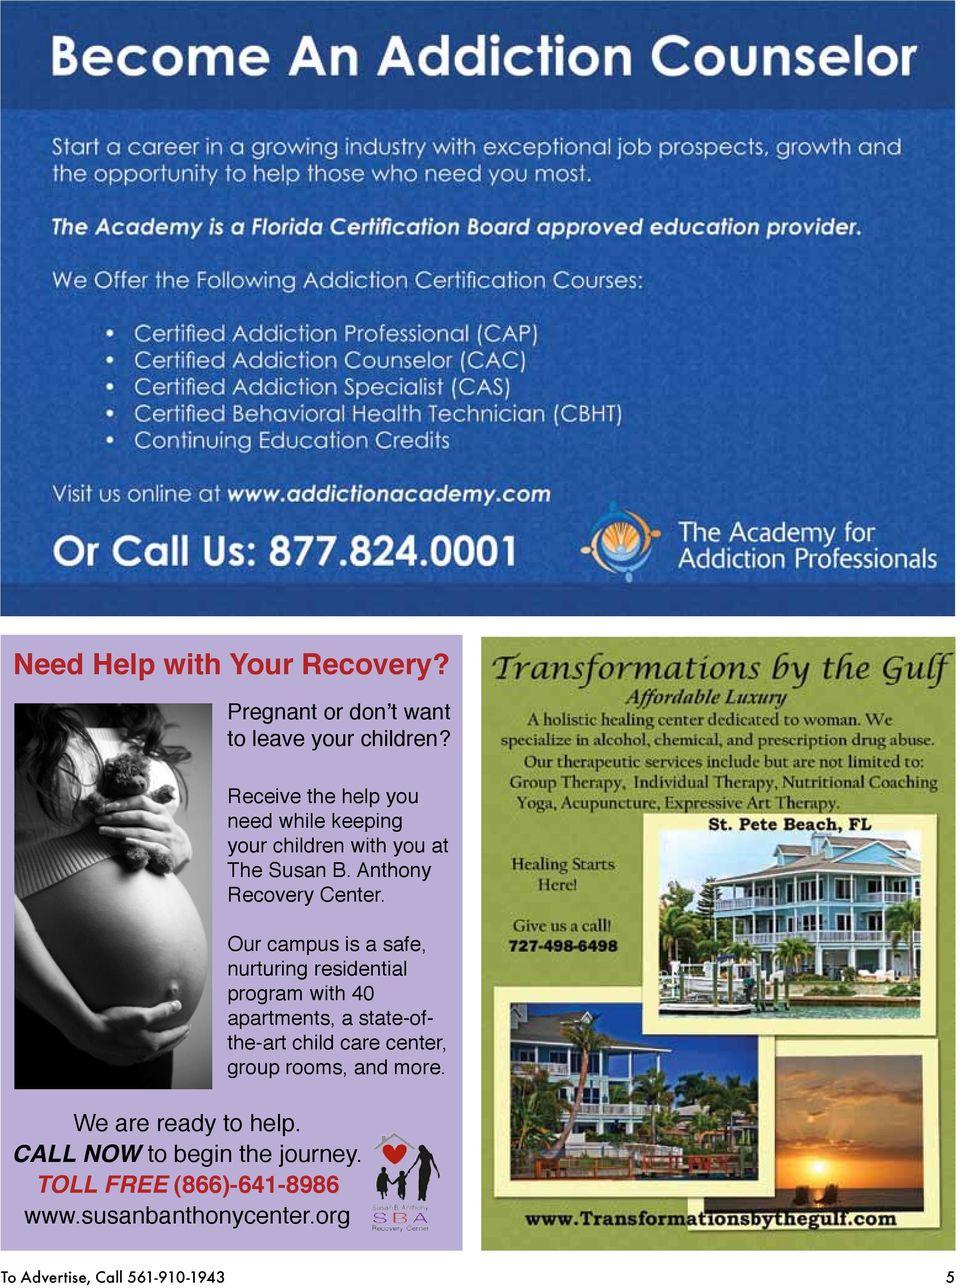 Our campus is a safe, nurturing residential program with 40 apartments, a state-ofthe-art child care center,